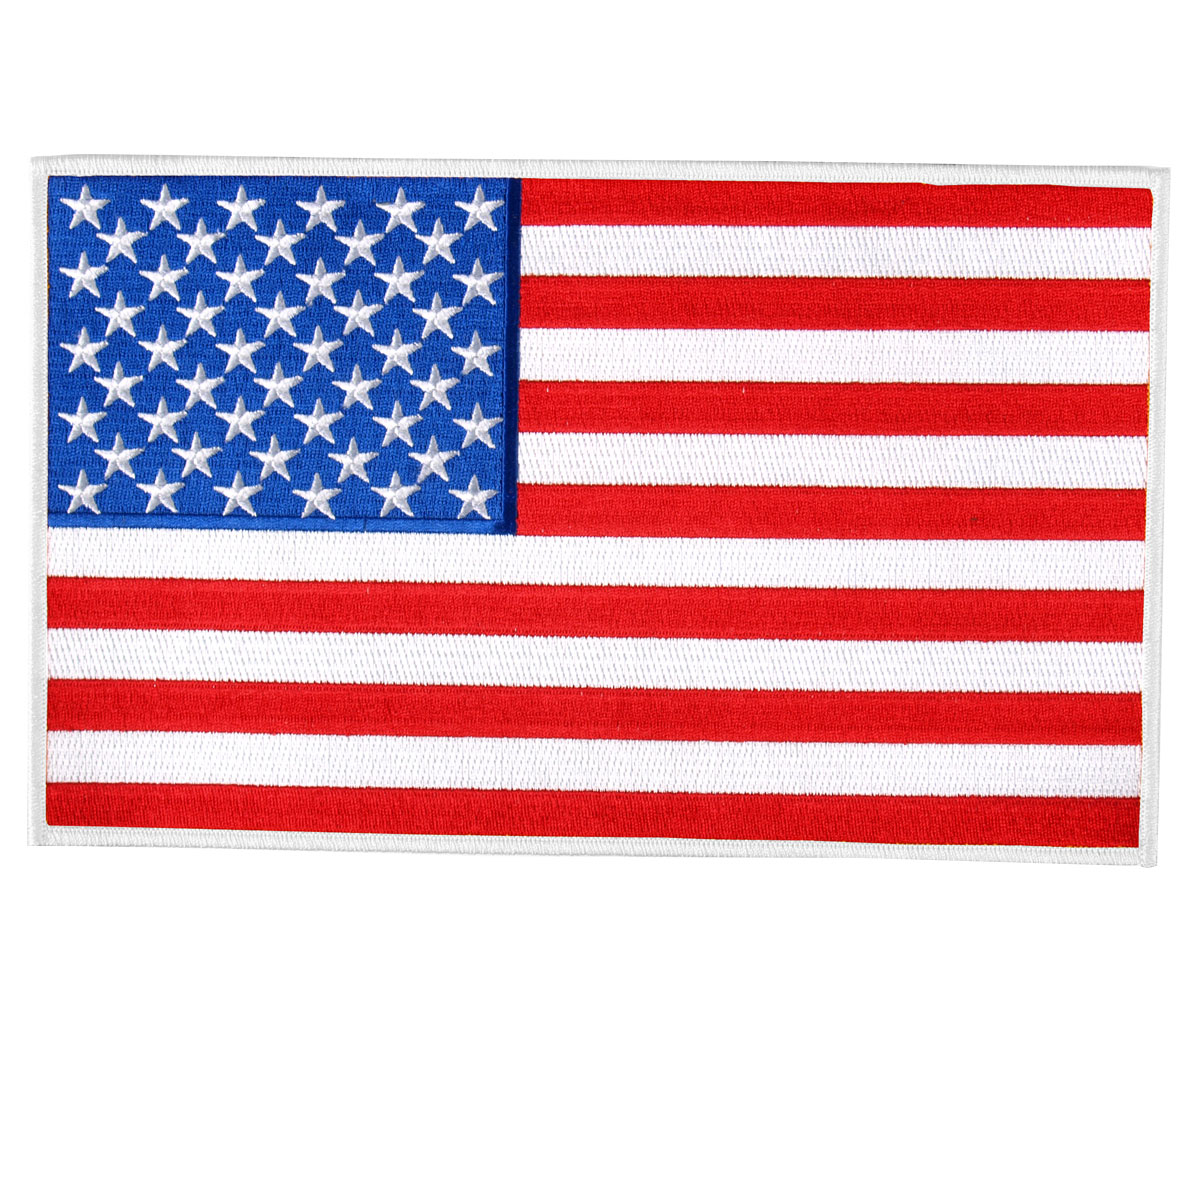 United states flag border clipart image black and white Free American Flag Page Border, Download Free Clip Art, Free ... image black and white